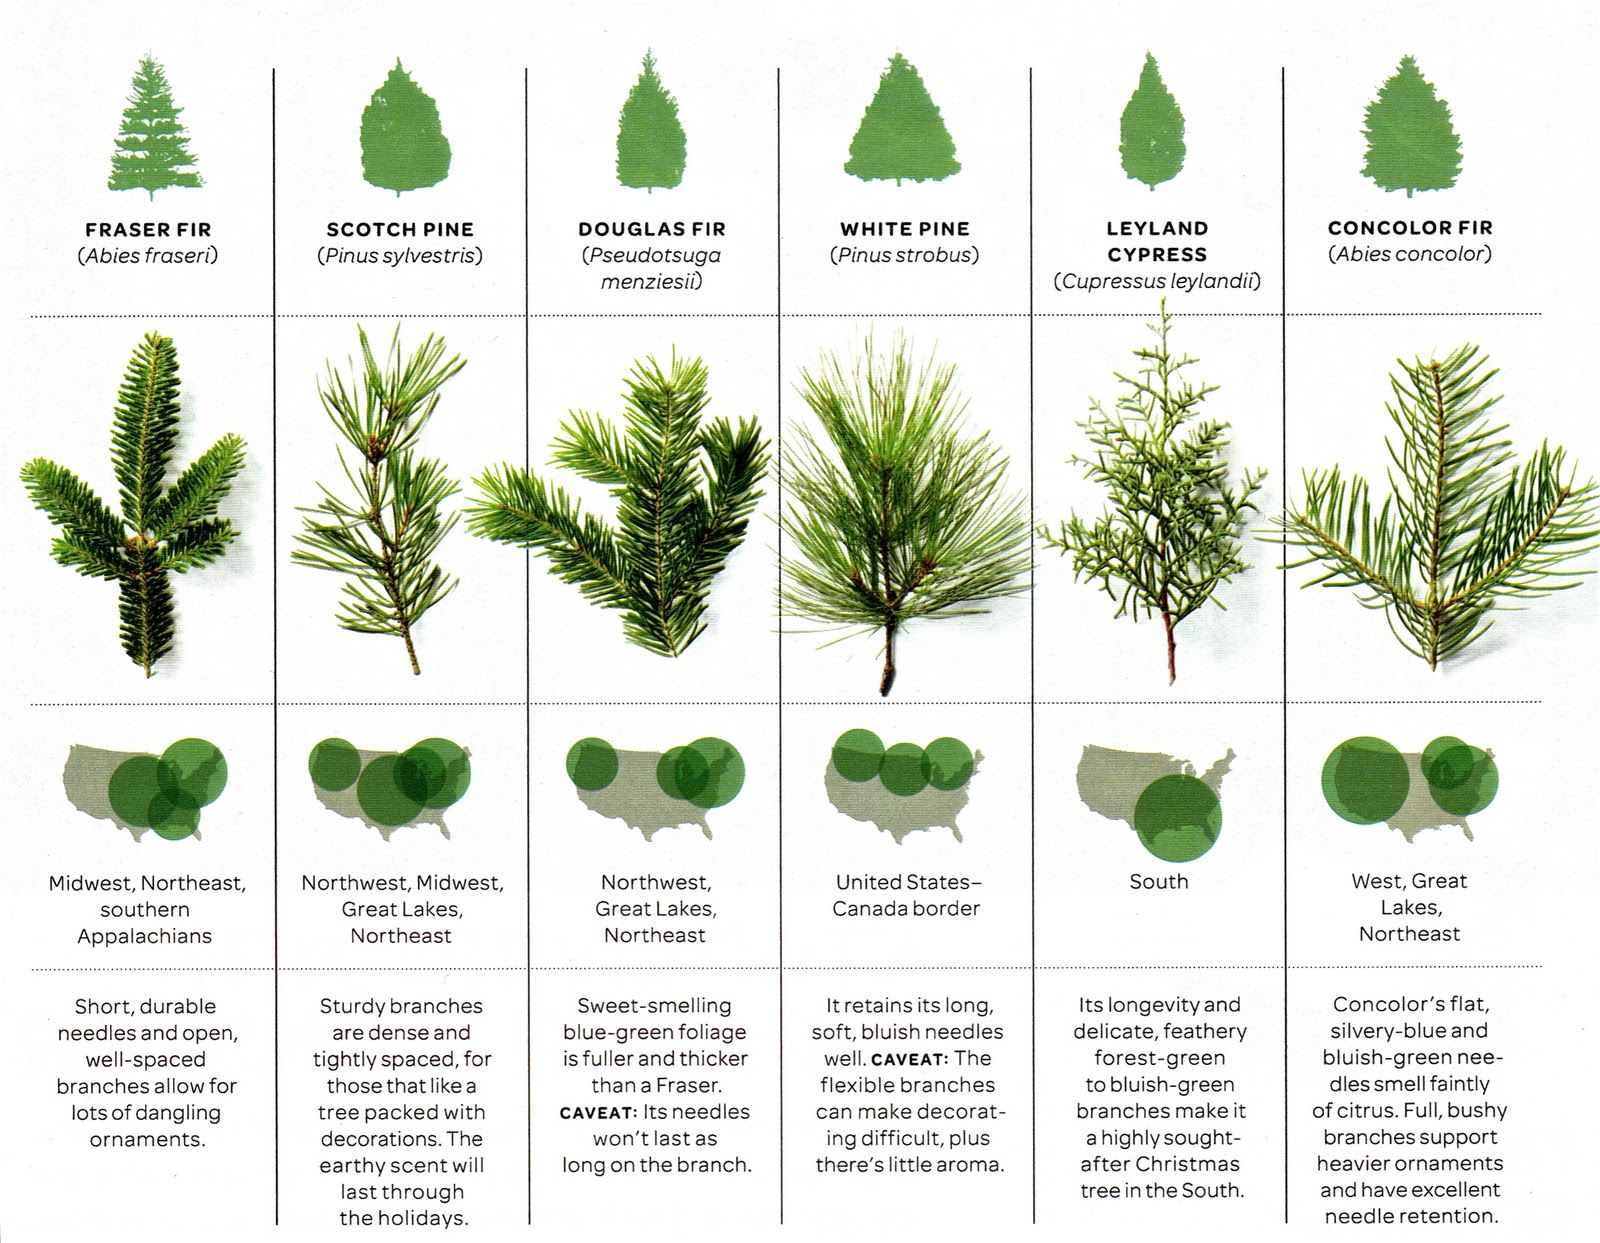 Great christmas tree guide and helpful for yard choices siembra great christmas tree guide and helpful for yard choices sciox Gallery